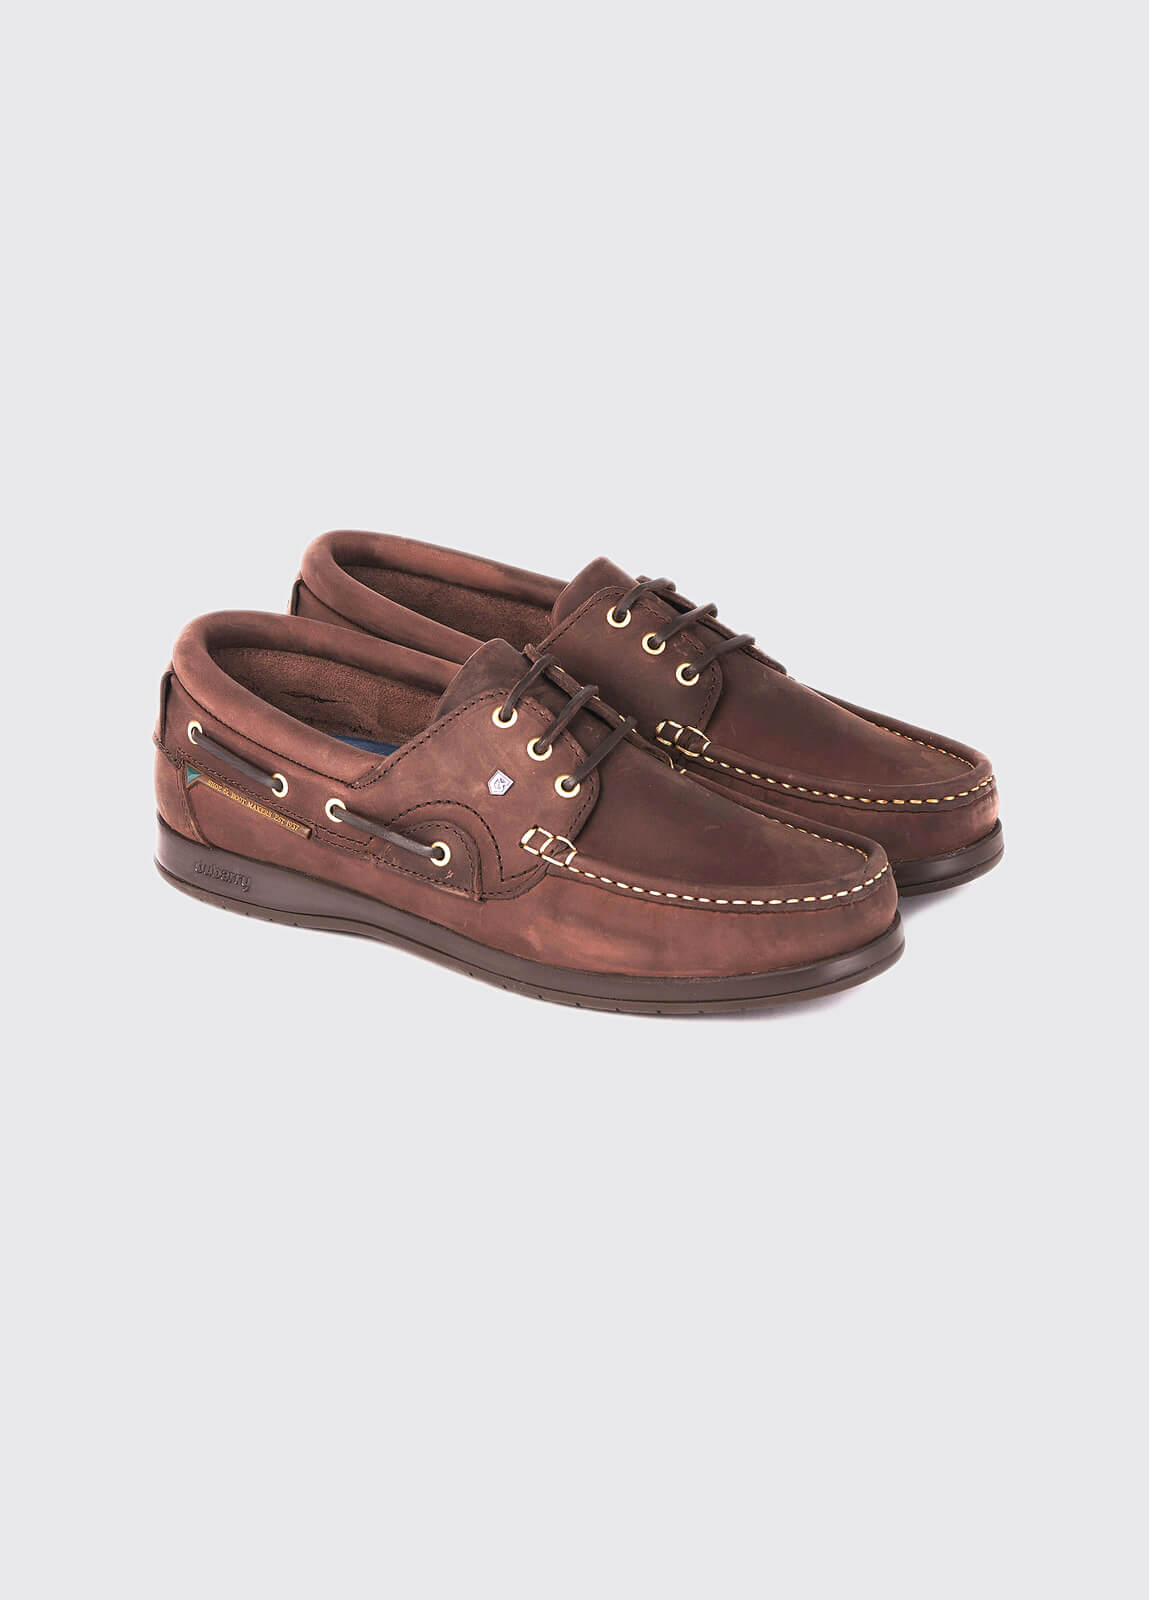 Commodore XLT Deck Shoe - Old Rum